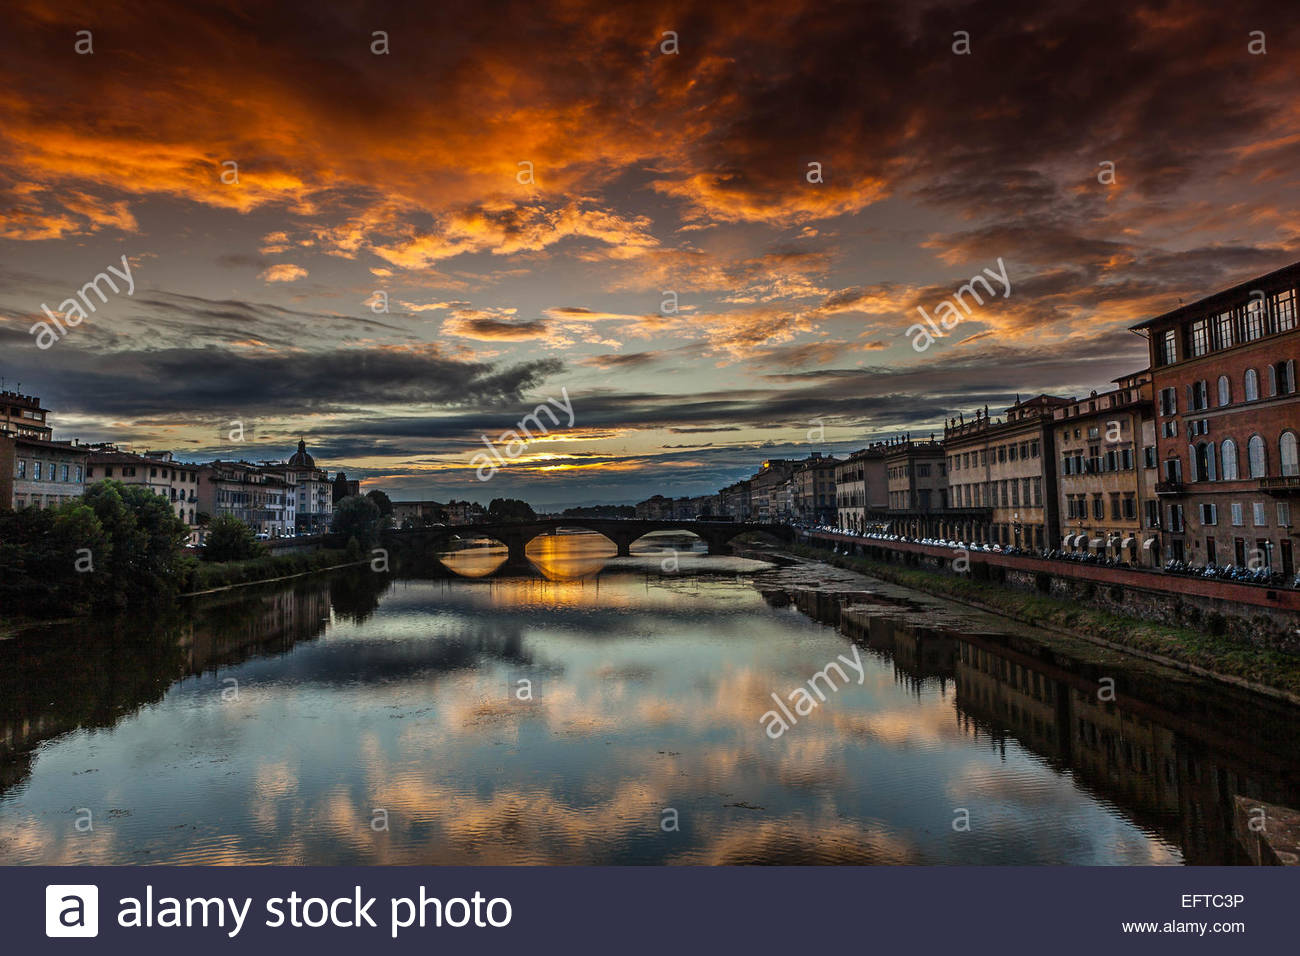 Moody sky reflecting in still city river - Stock Image